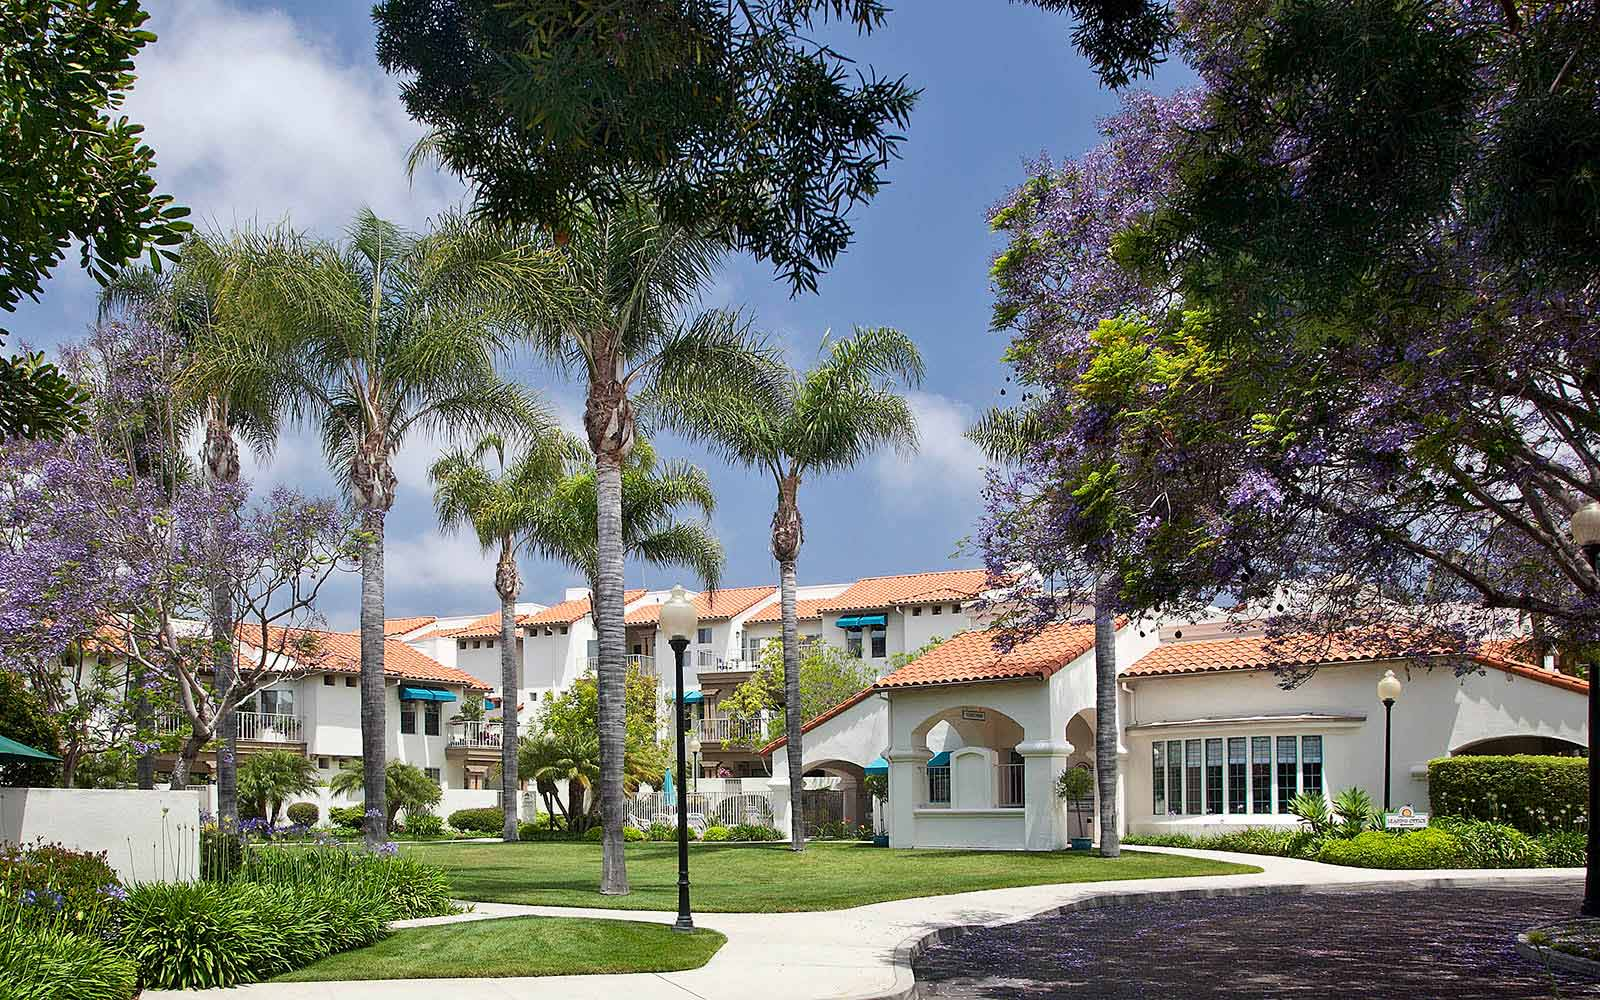 Beautifully Landscaped Grounds at Rancho Franciscan Senior Apartments in Santa Barbara, CA